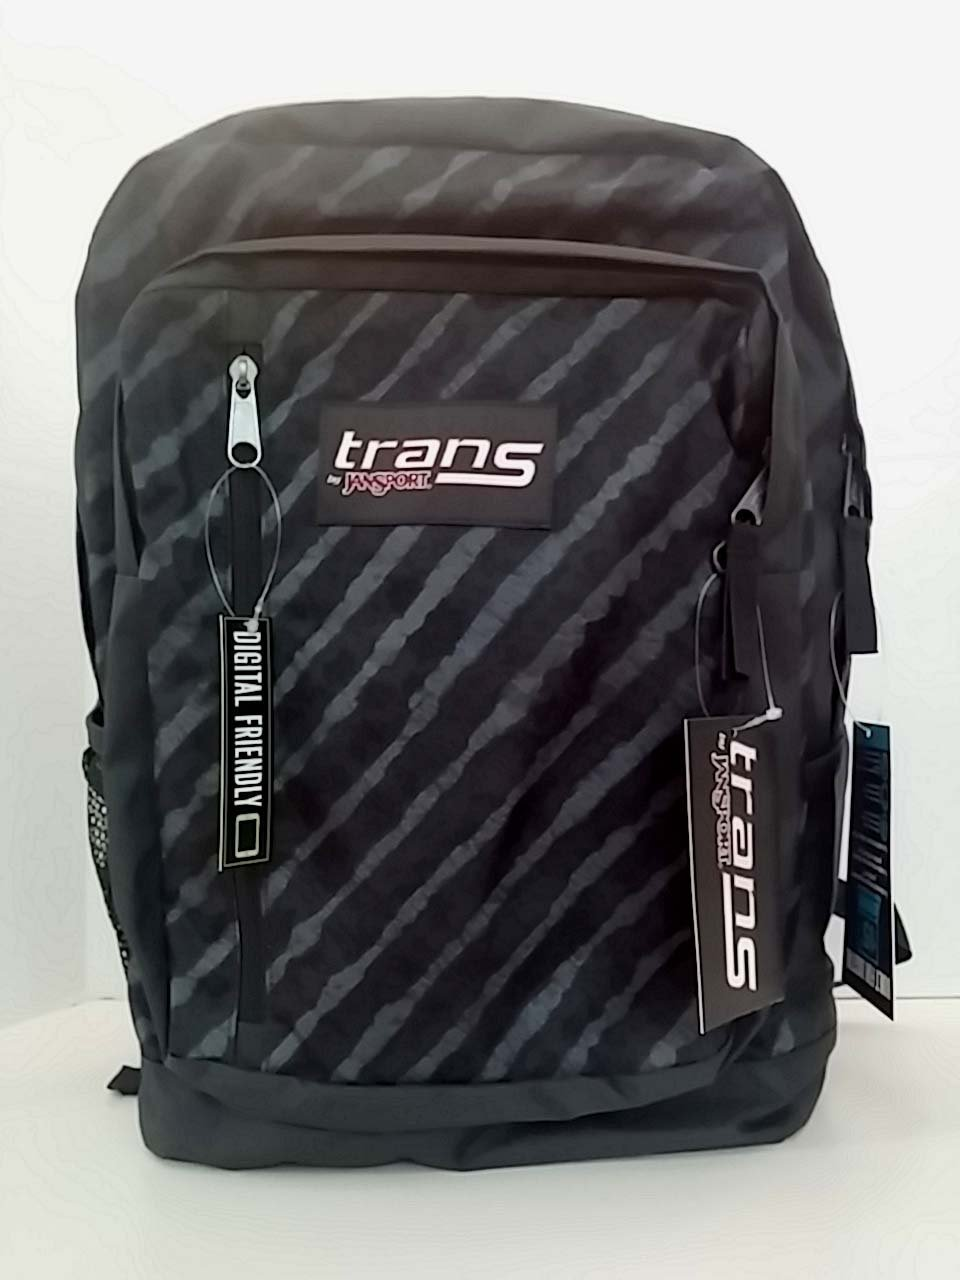 8f78a3ee5d68 Buy Jansport Trans Megahertz II Backpack - Grey with Stripes in ...